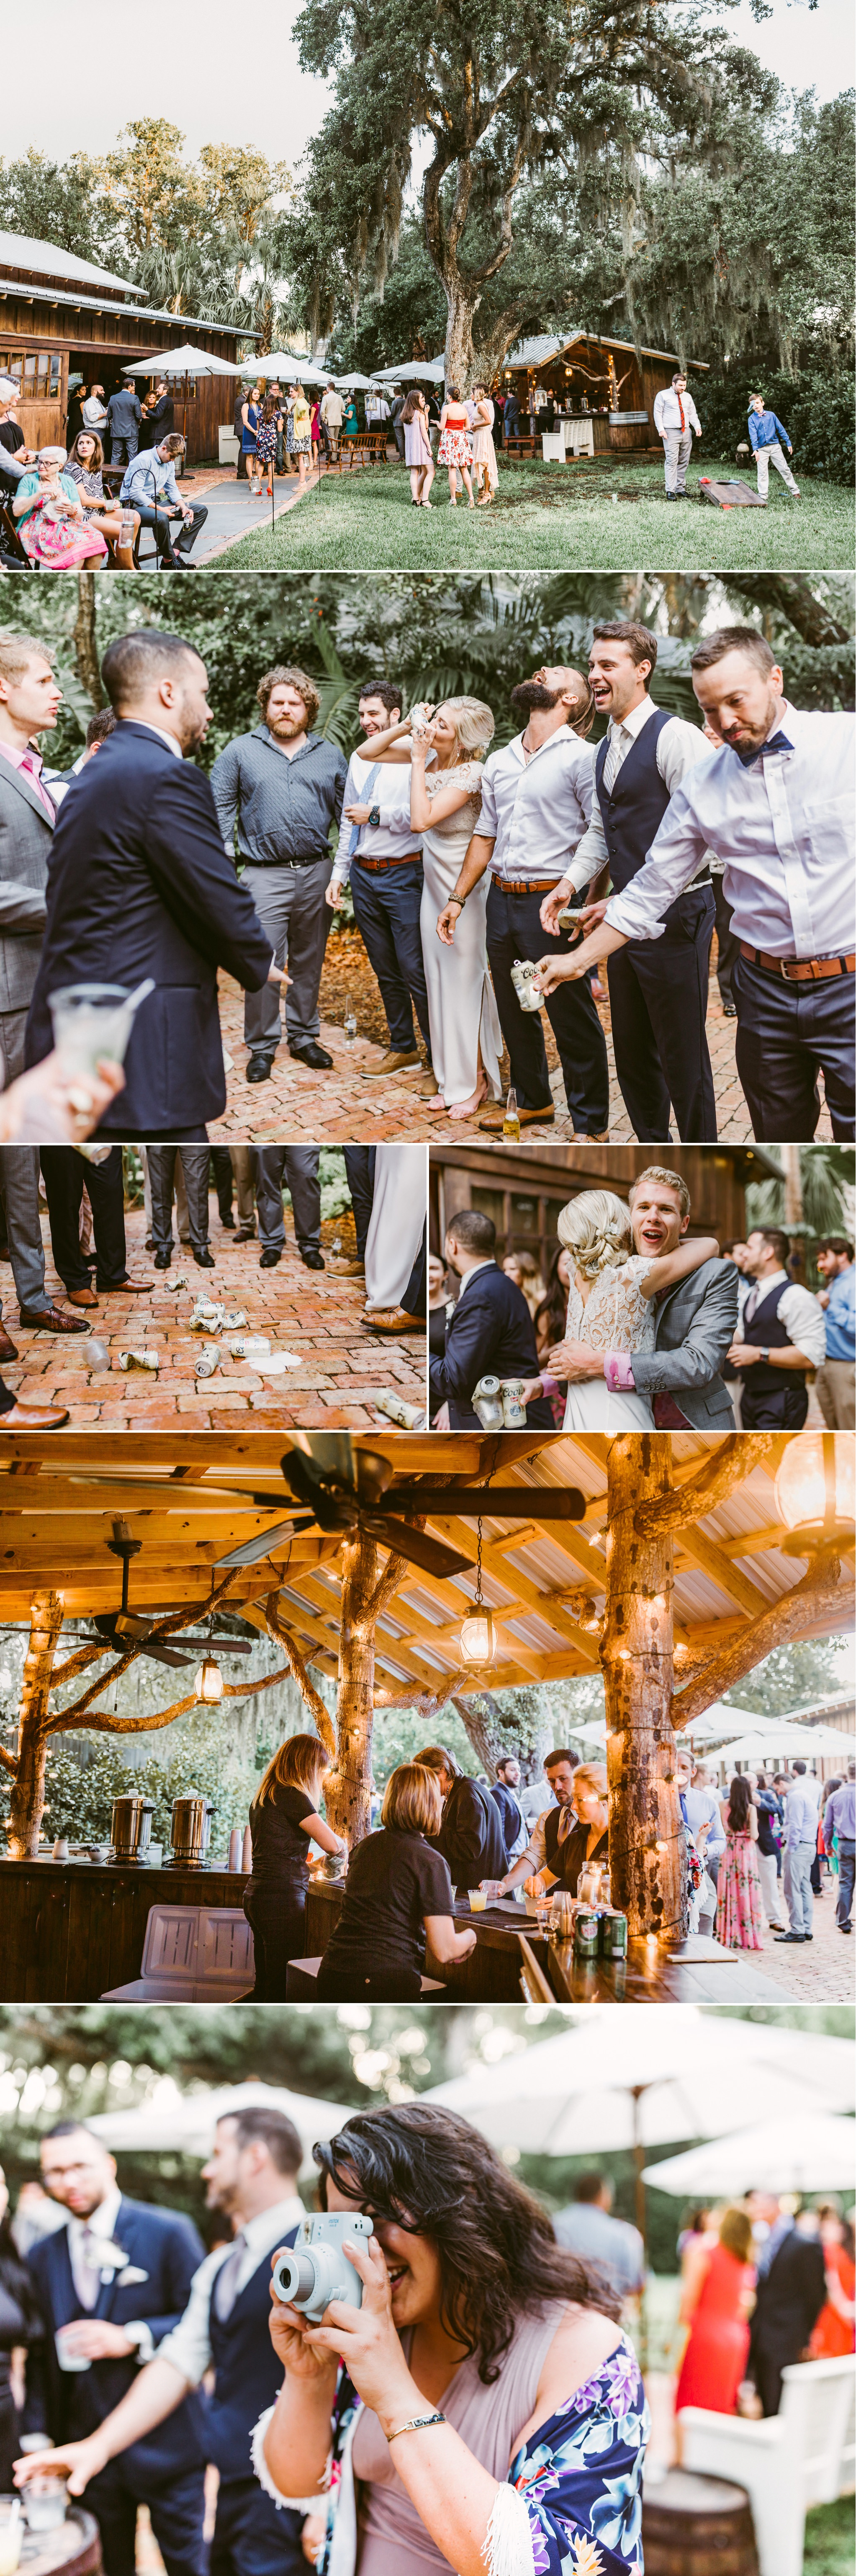 Boho Chic Orlando Wedding Photography Delameter House - Angela + Max 26.jpg